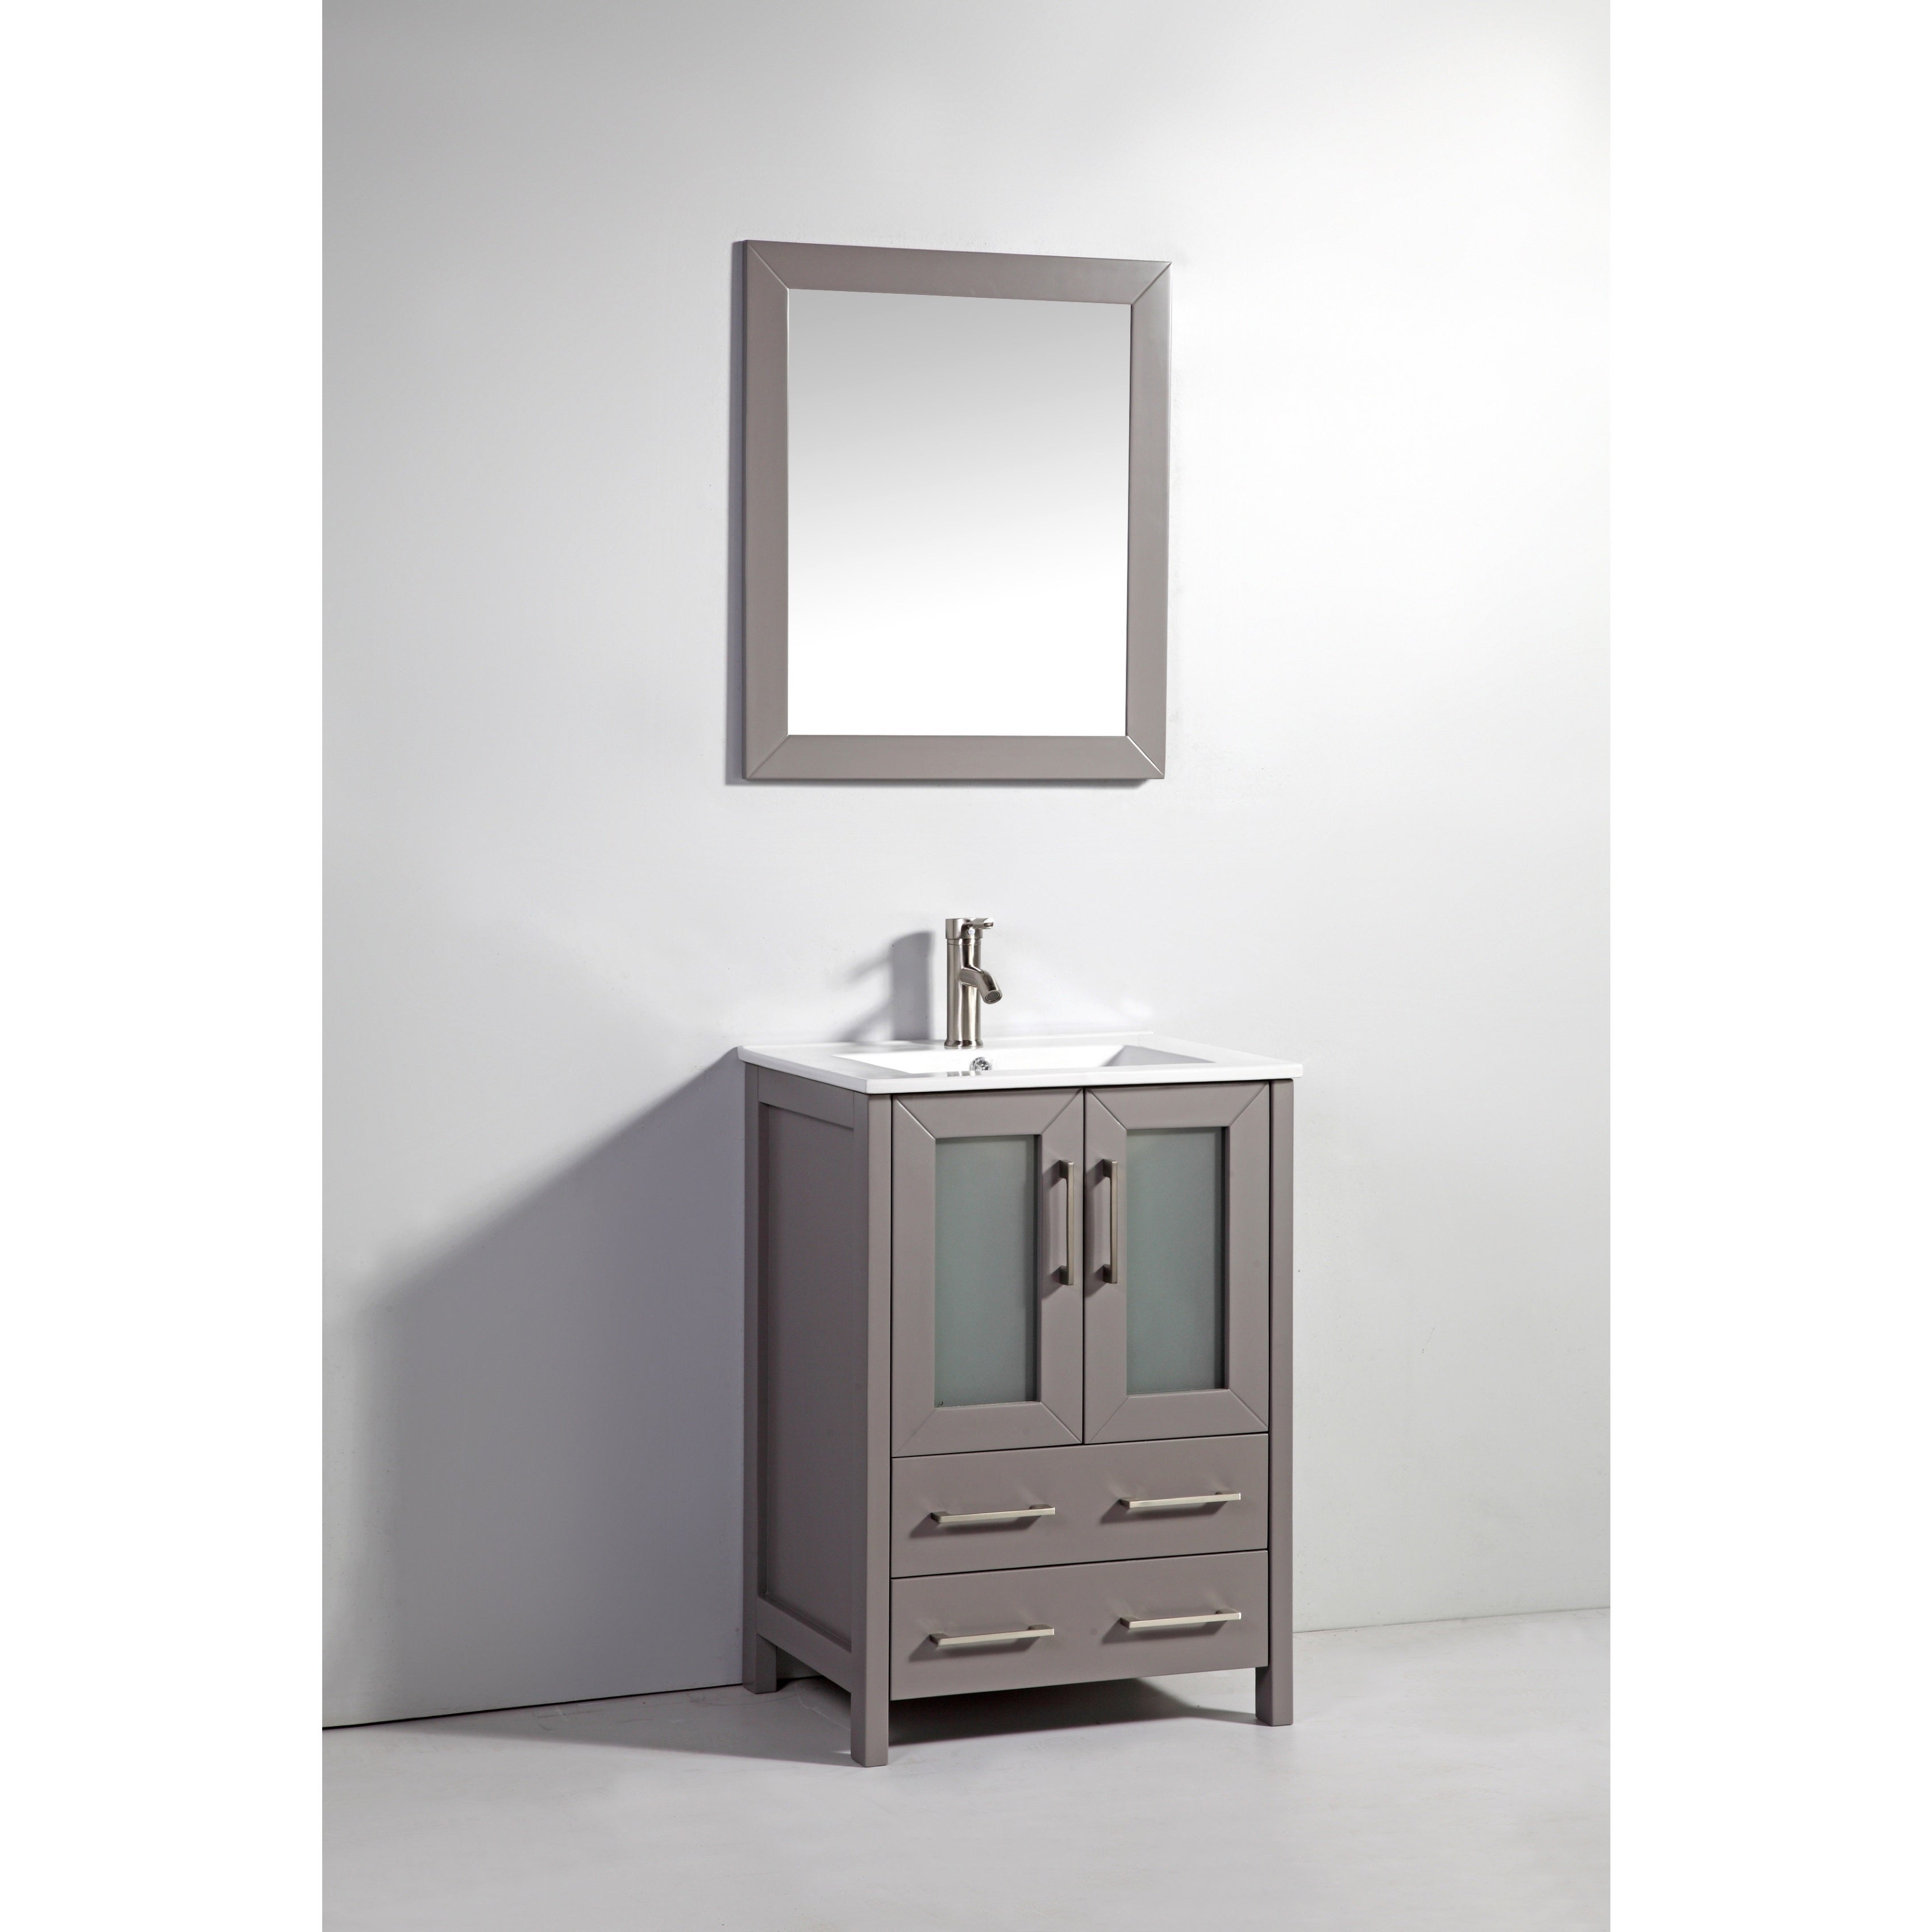 vanities artistry exemplary wall custom vanity inch top cabinets bathroom sink mounted floating with most